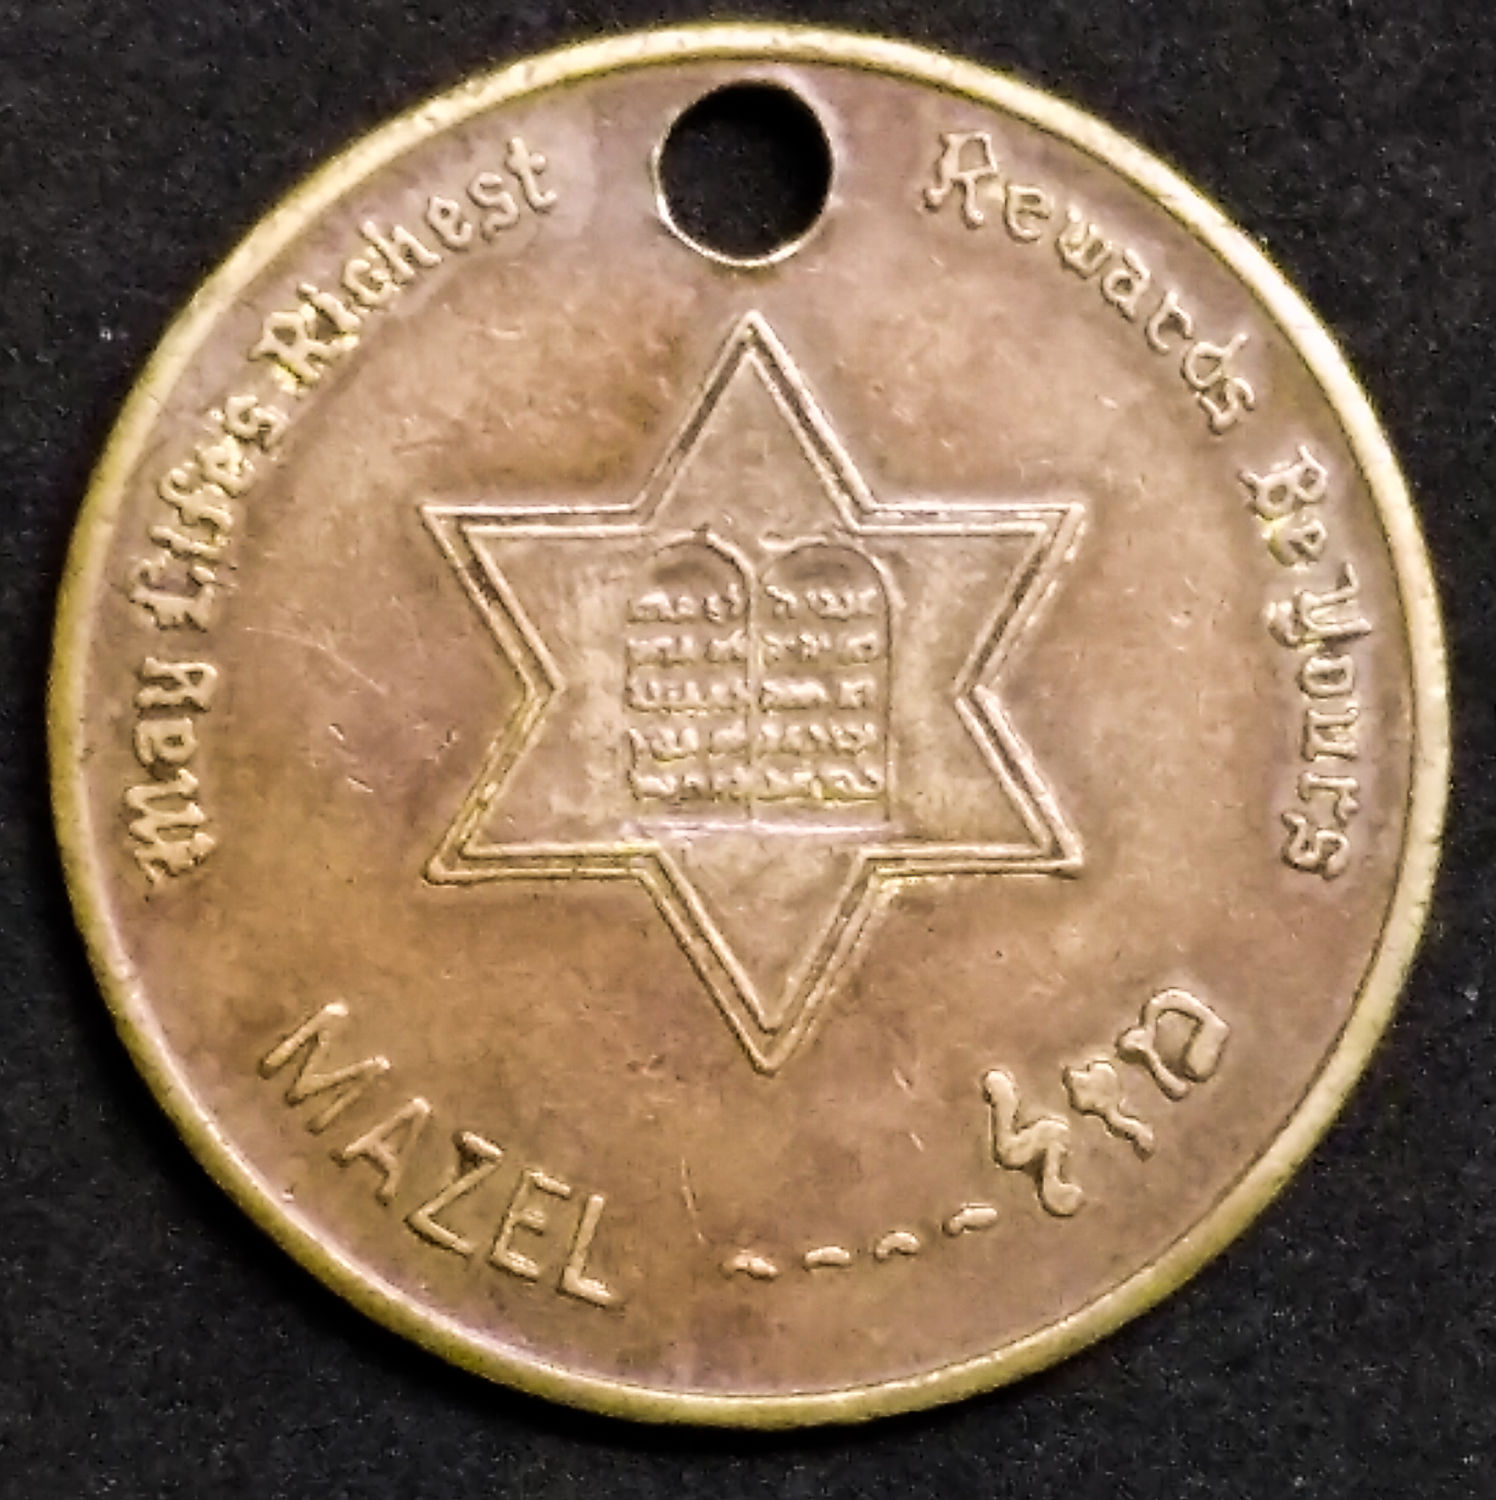 Lot 14 - Medals, Tokens.  -  yigal avrahamy Auction 03 - Coins and Banknotes of Israel and Palestine, medals and tokens.